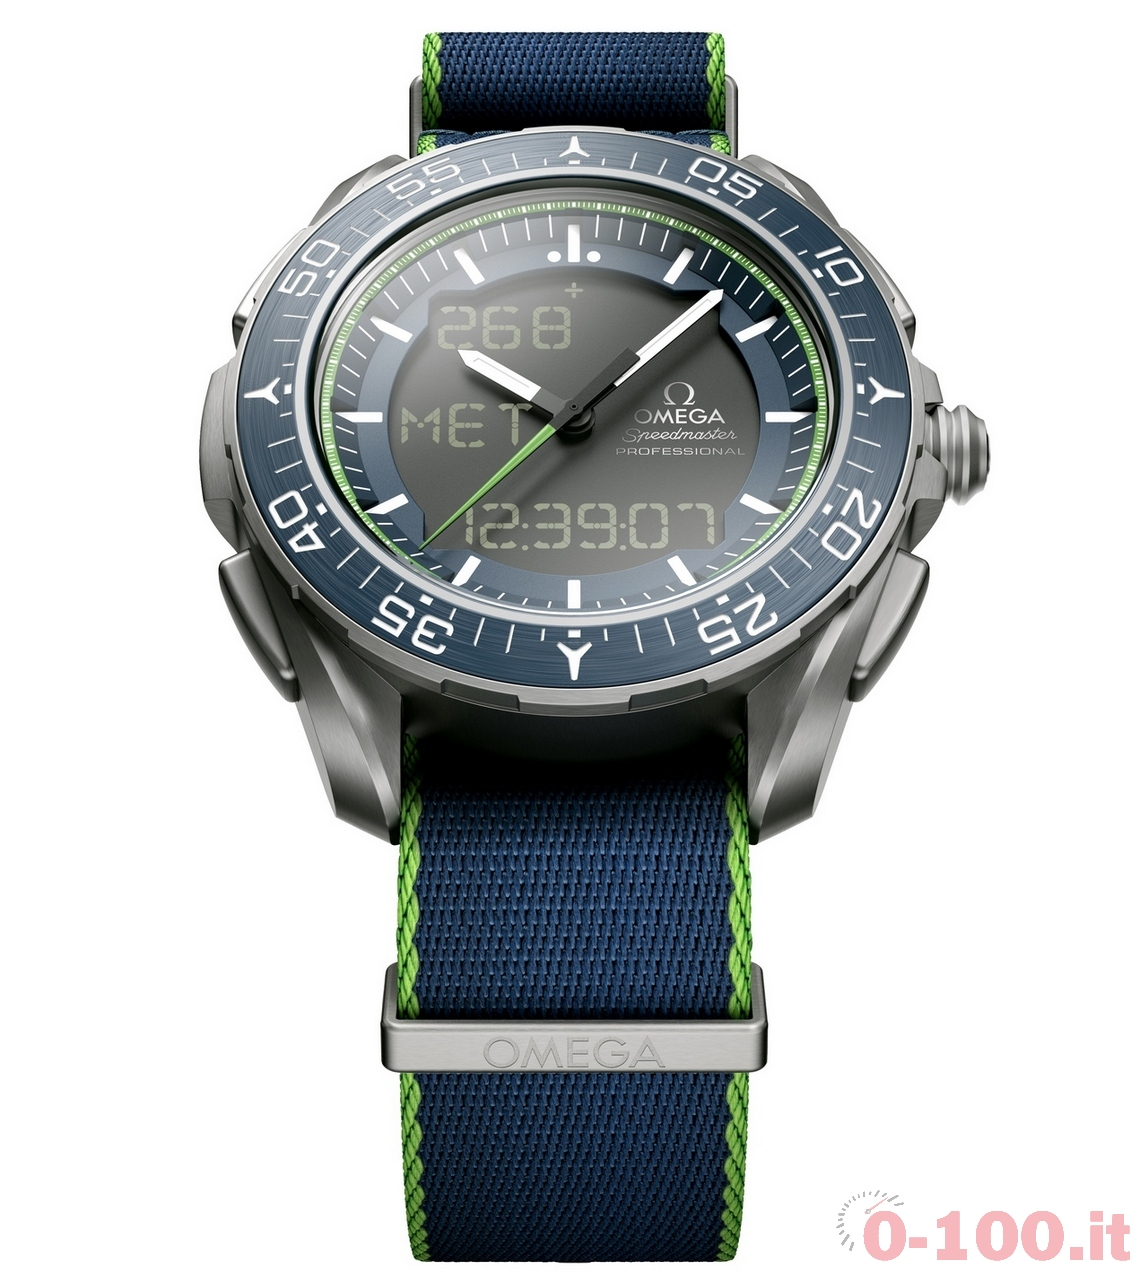 omega-speedmaster-skywalker-x-33-solar-limited-edition-prezzo-price_0-100_4